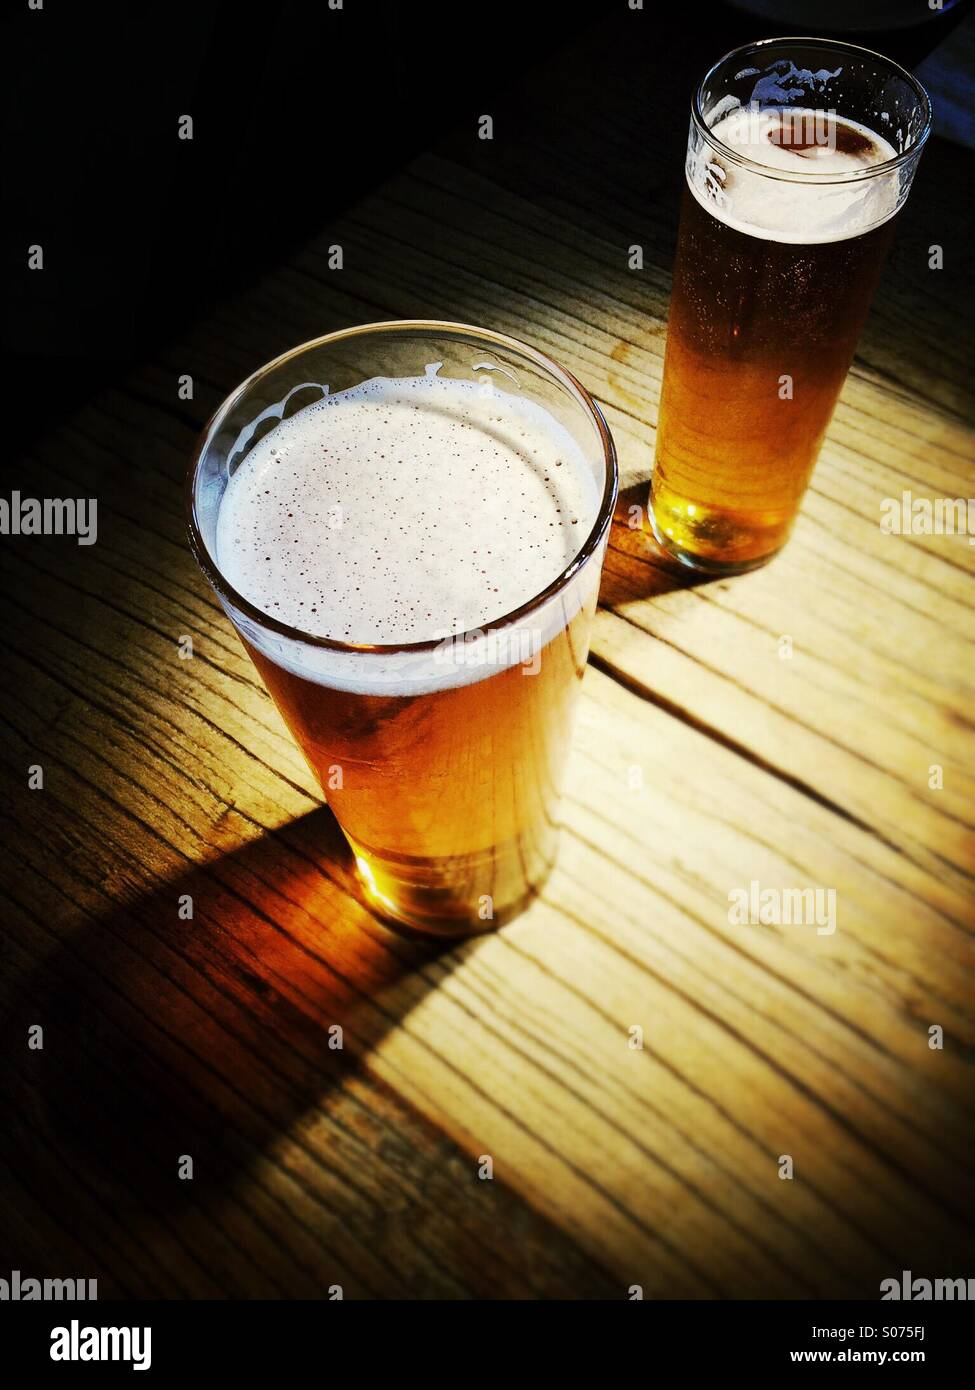 Pint and a half of beer - Stock Image